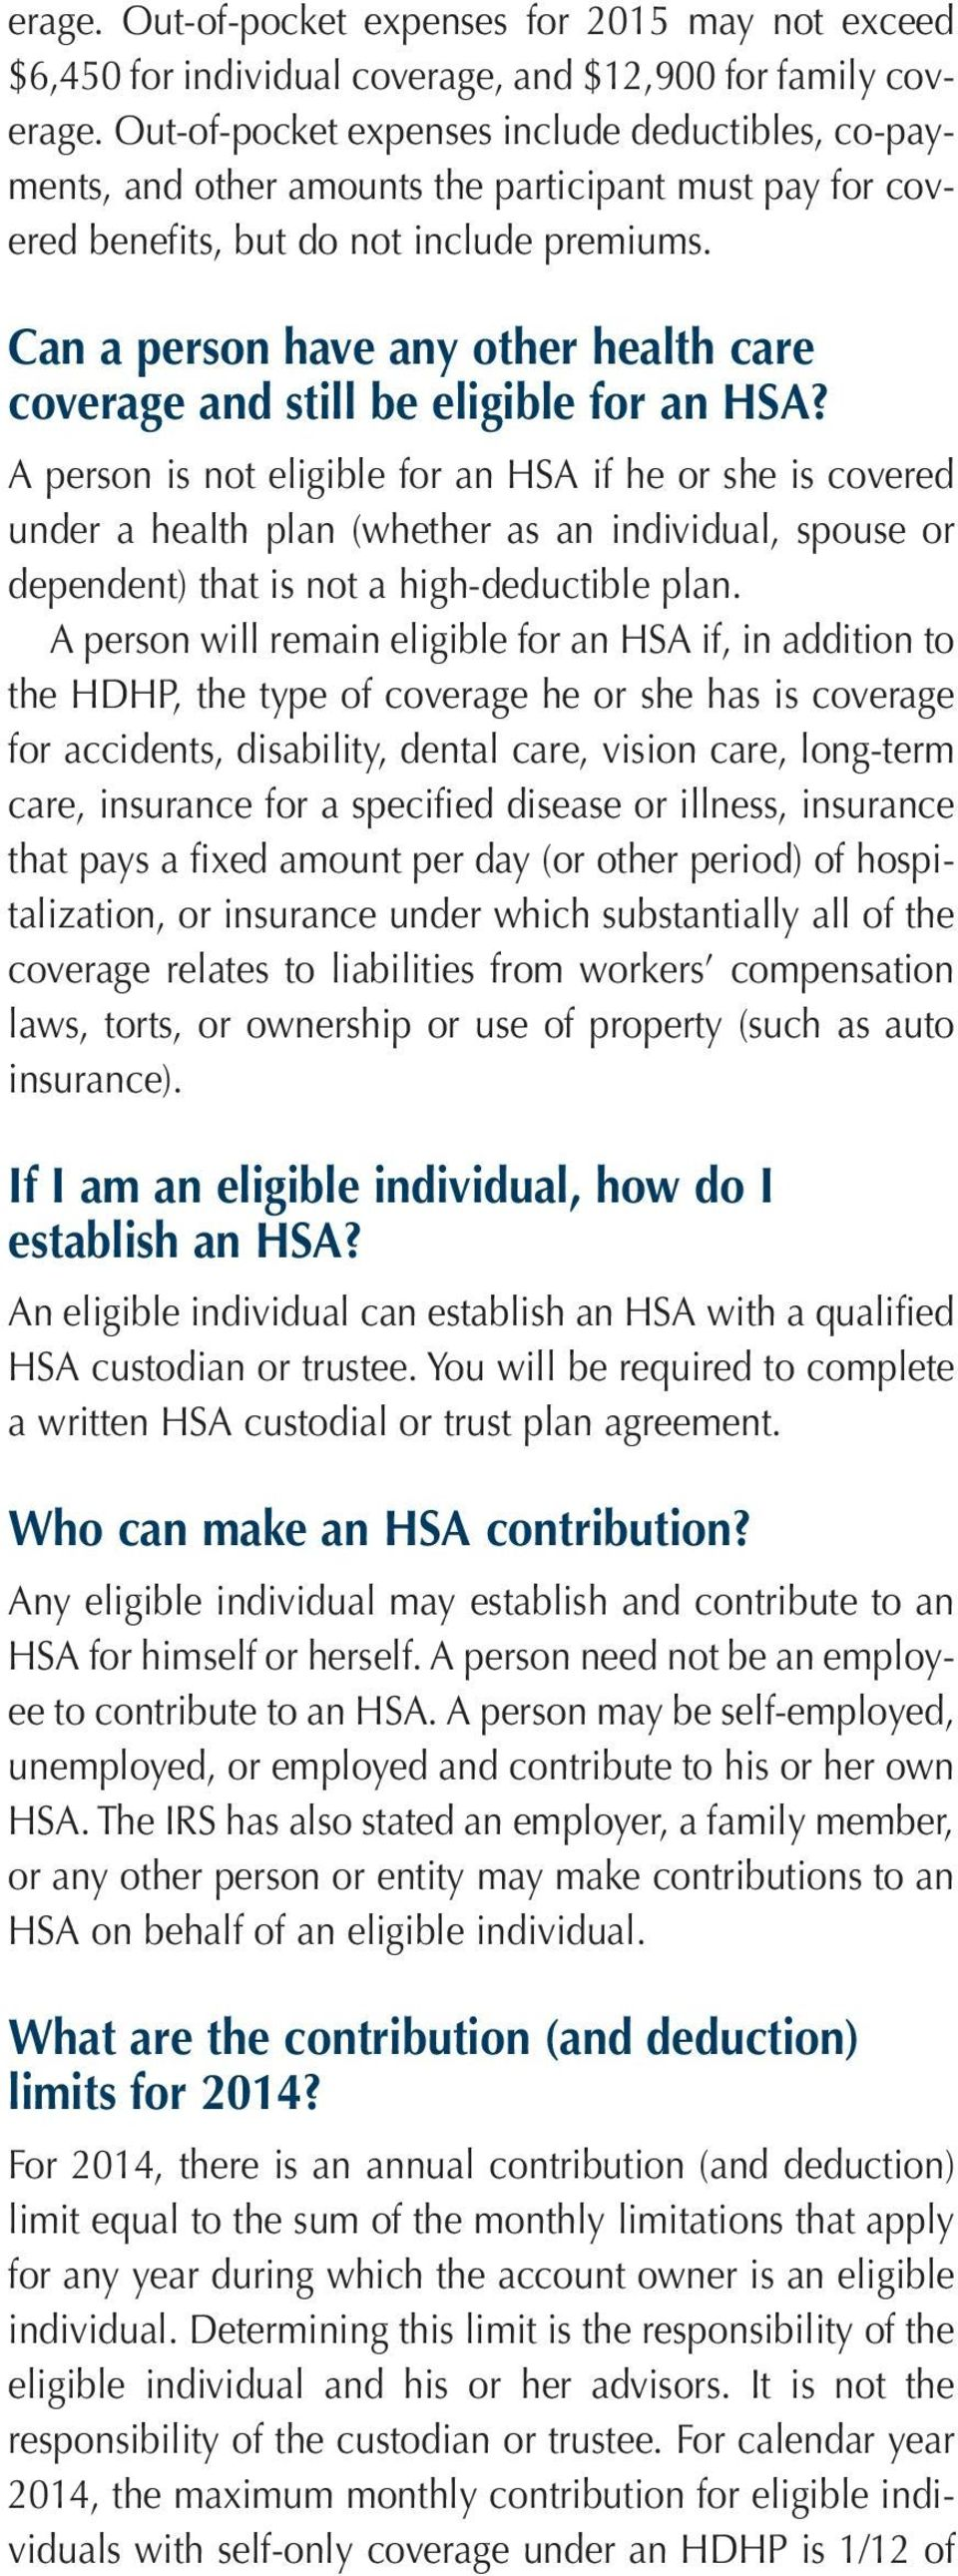 Can a person have any other health care coverage and still be eligible for an HSA?